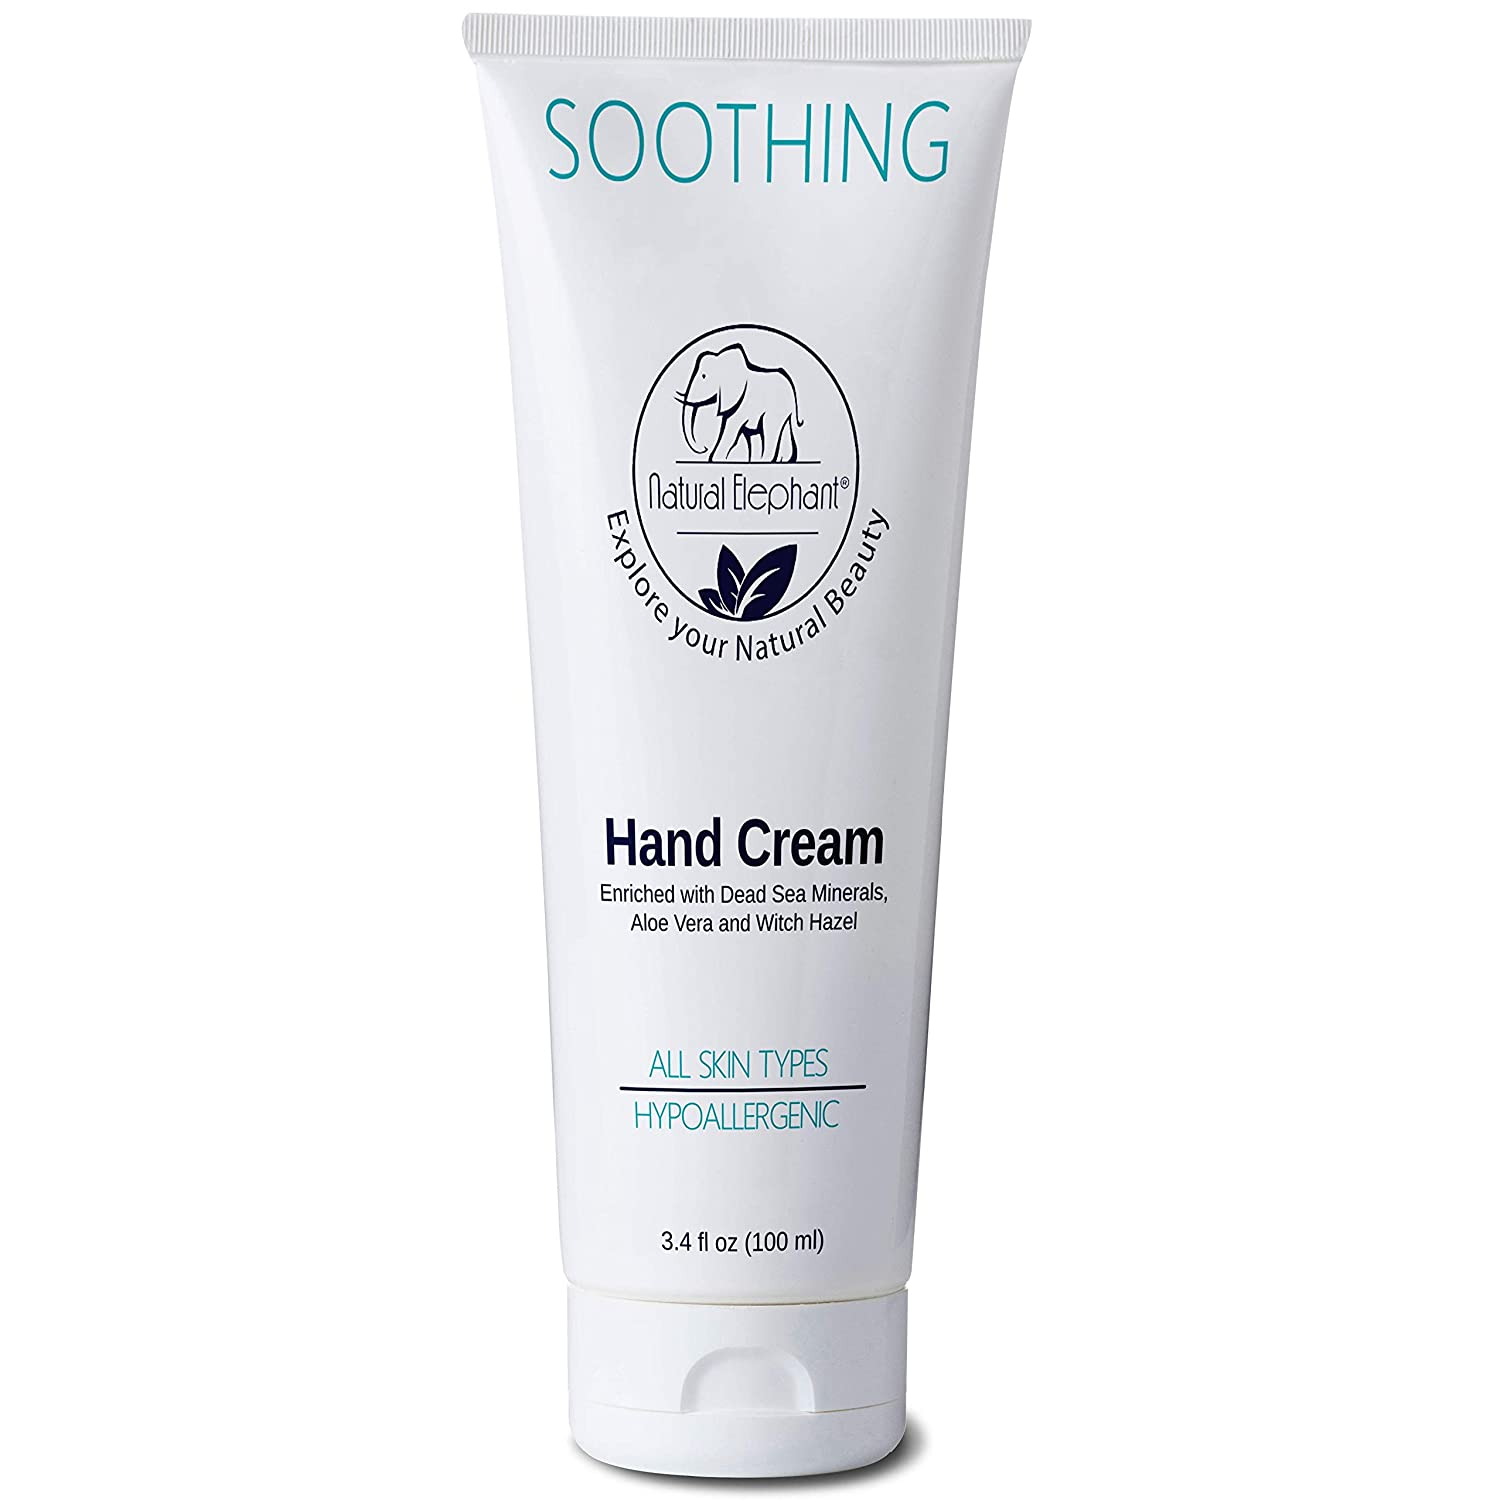 Natural Elephant Soothing Hand Cream with Dead Sea Minerals 3.4 fl oz (100ml)